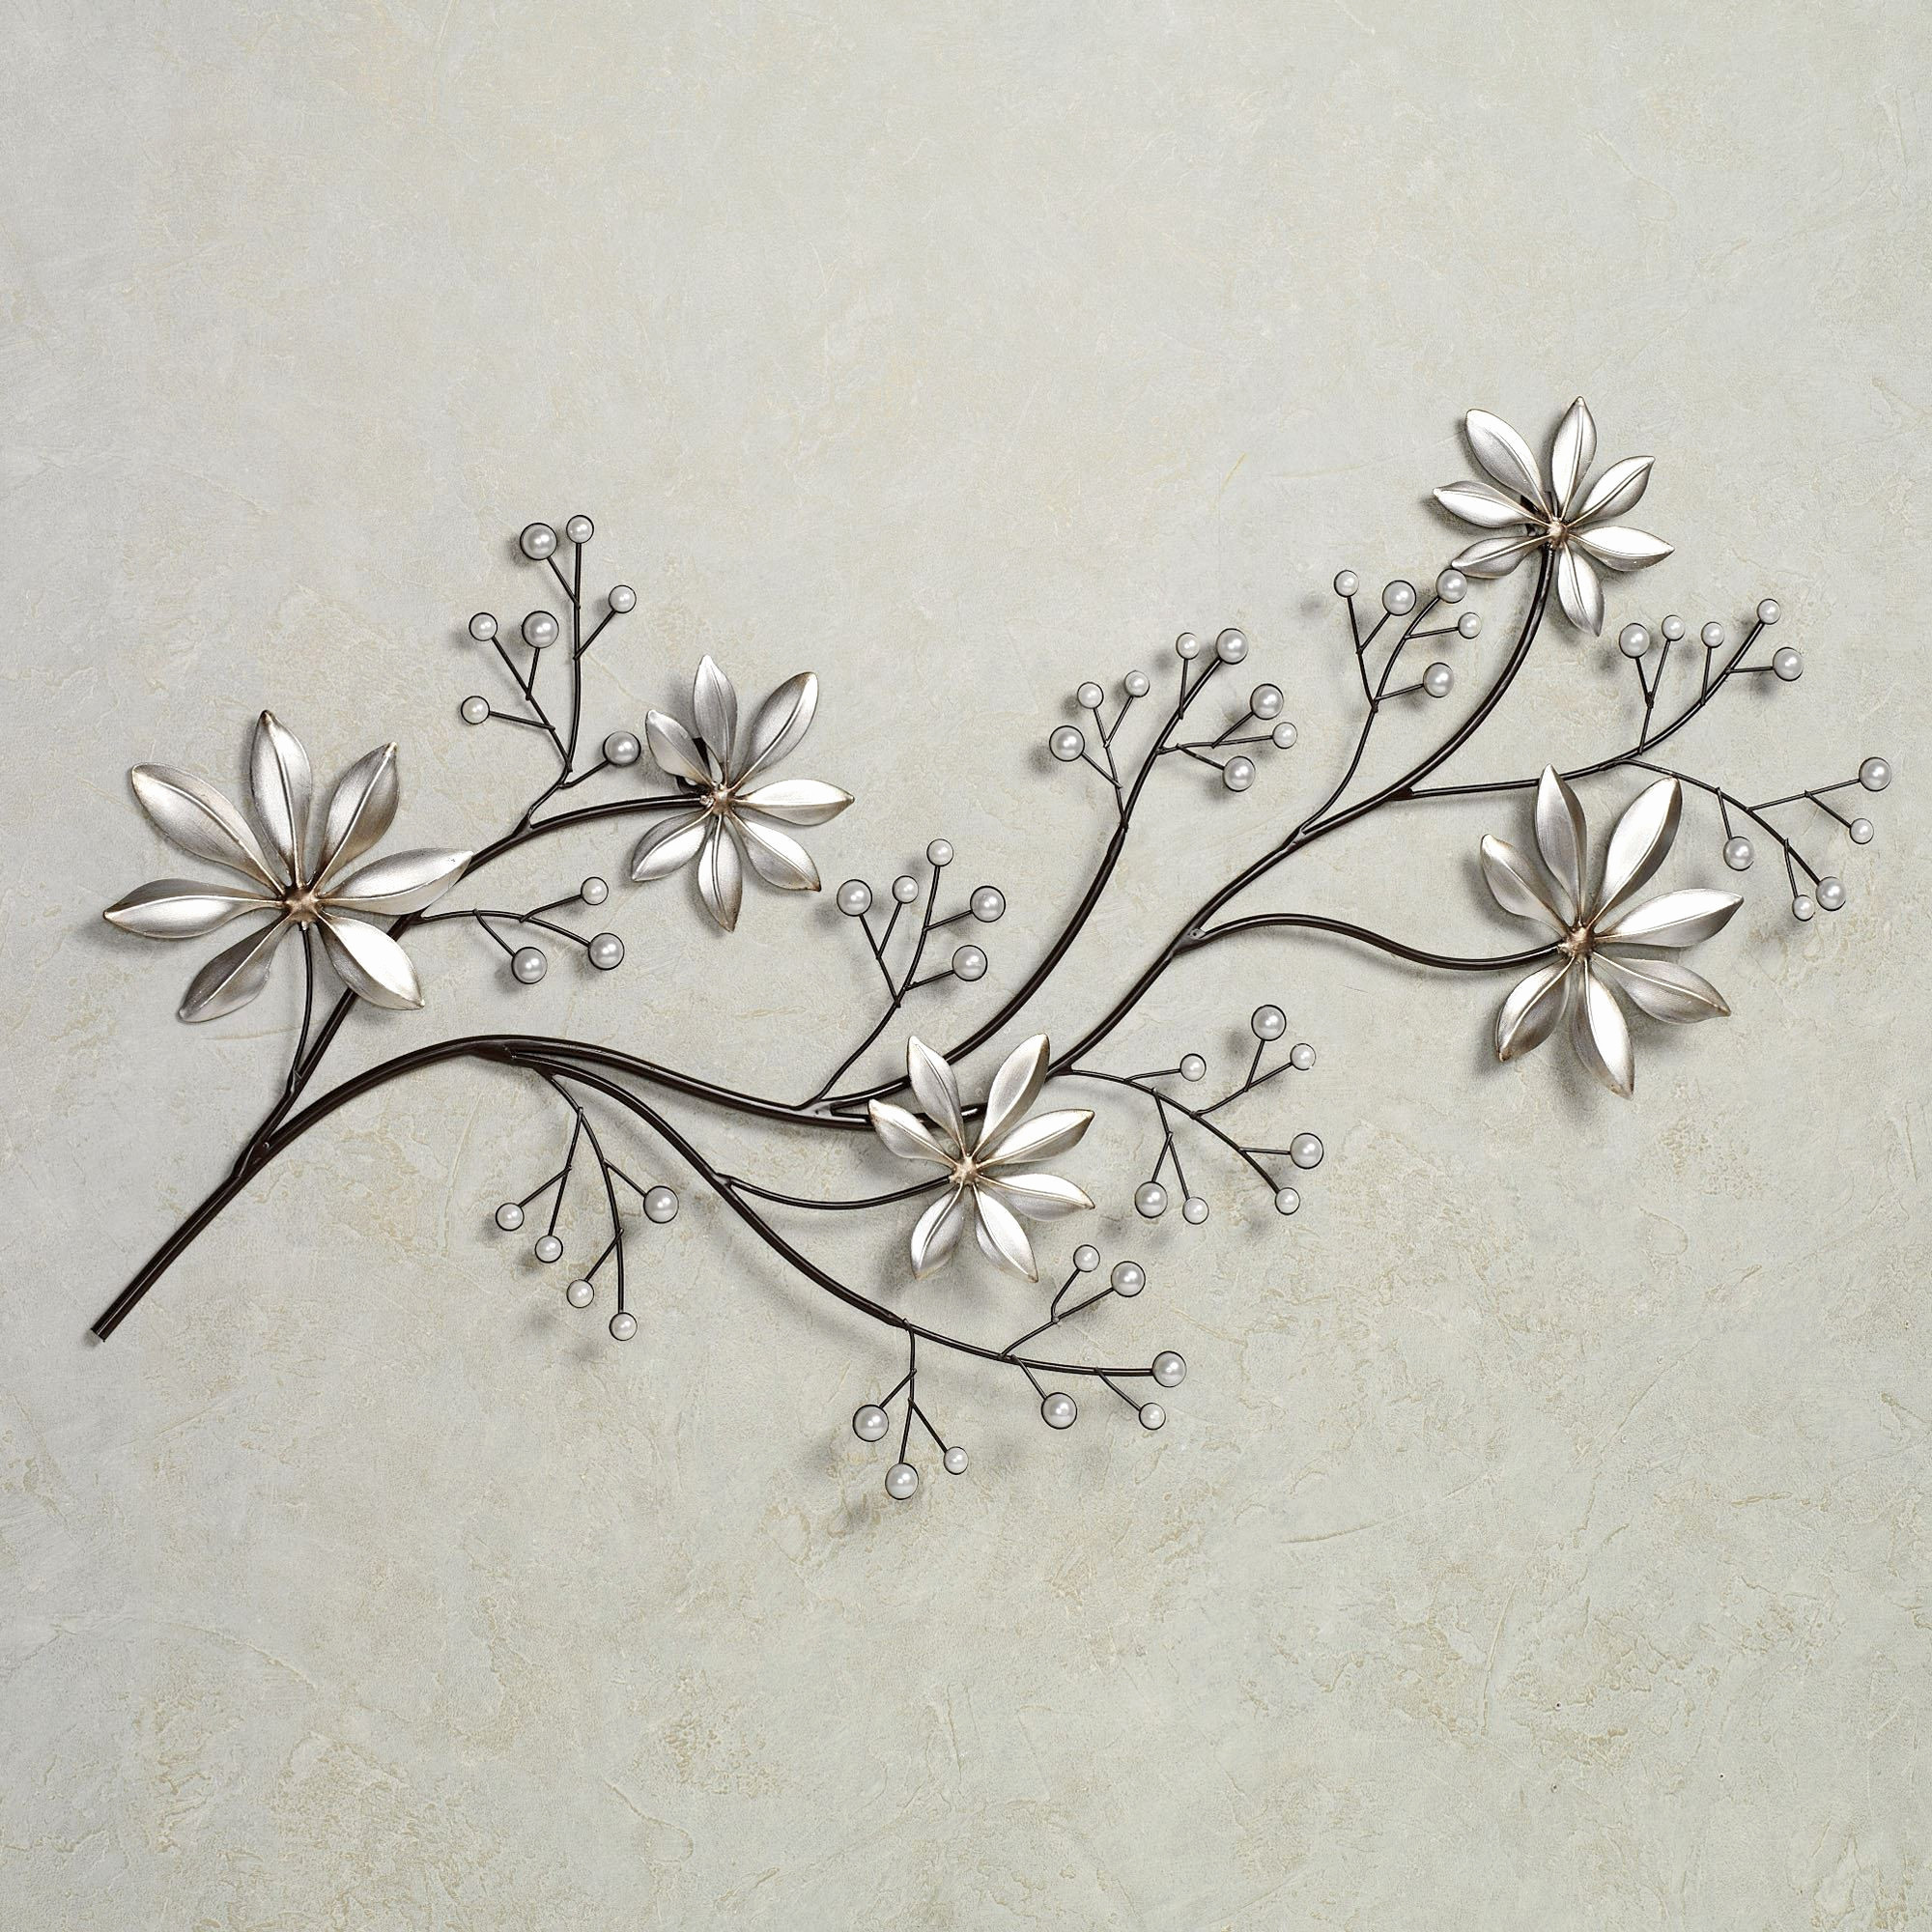 Farmhouse Metal Wall Vase Of Metal Flower Vase Wall Decor Wall Decor Ideas Intended for Best Of H Vases Wall Hanging Flower Vase Newspaper I 0d Inspiration